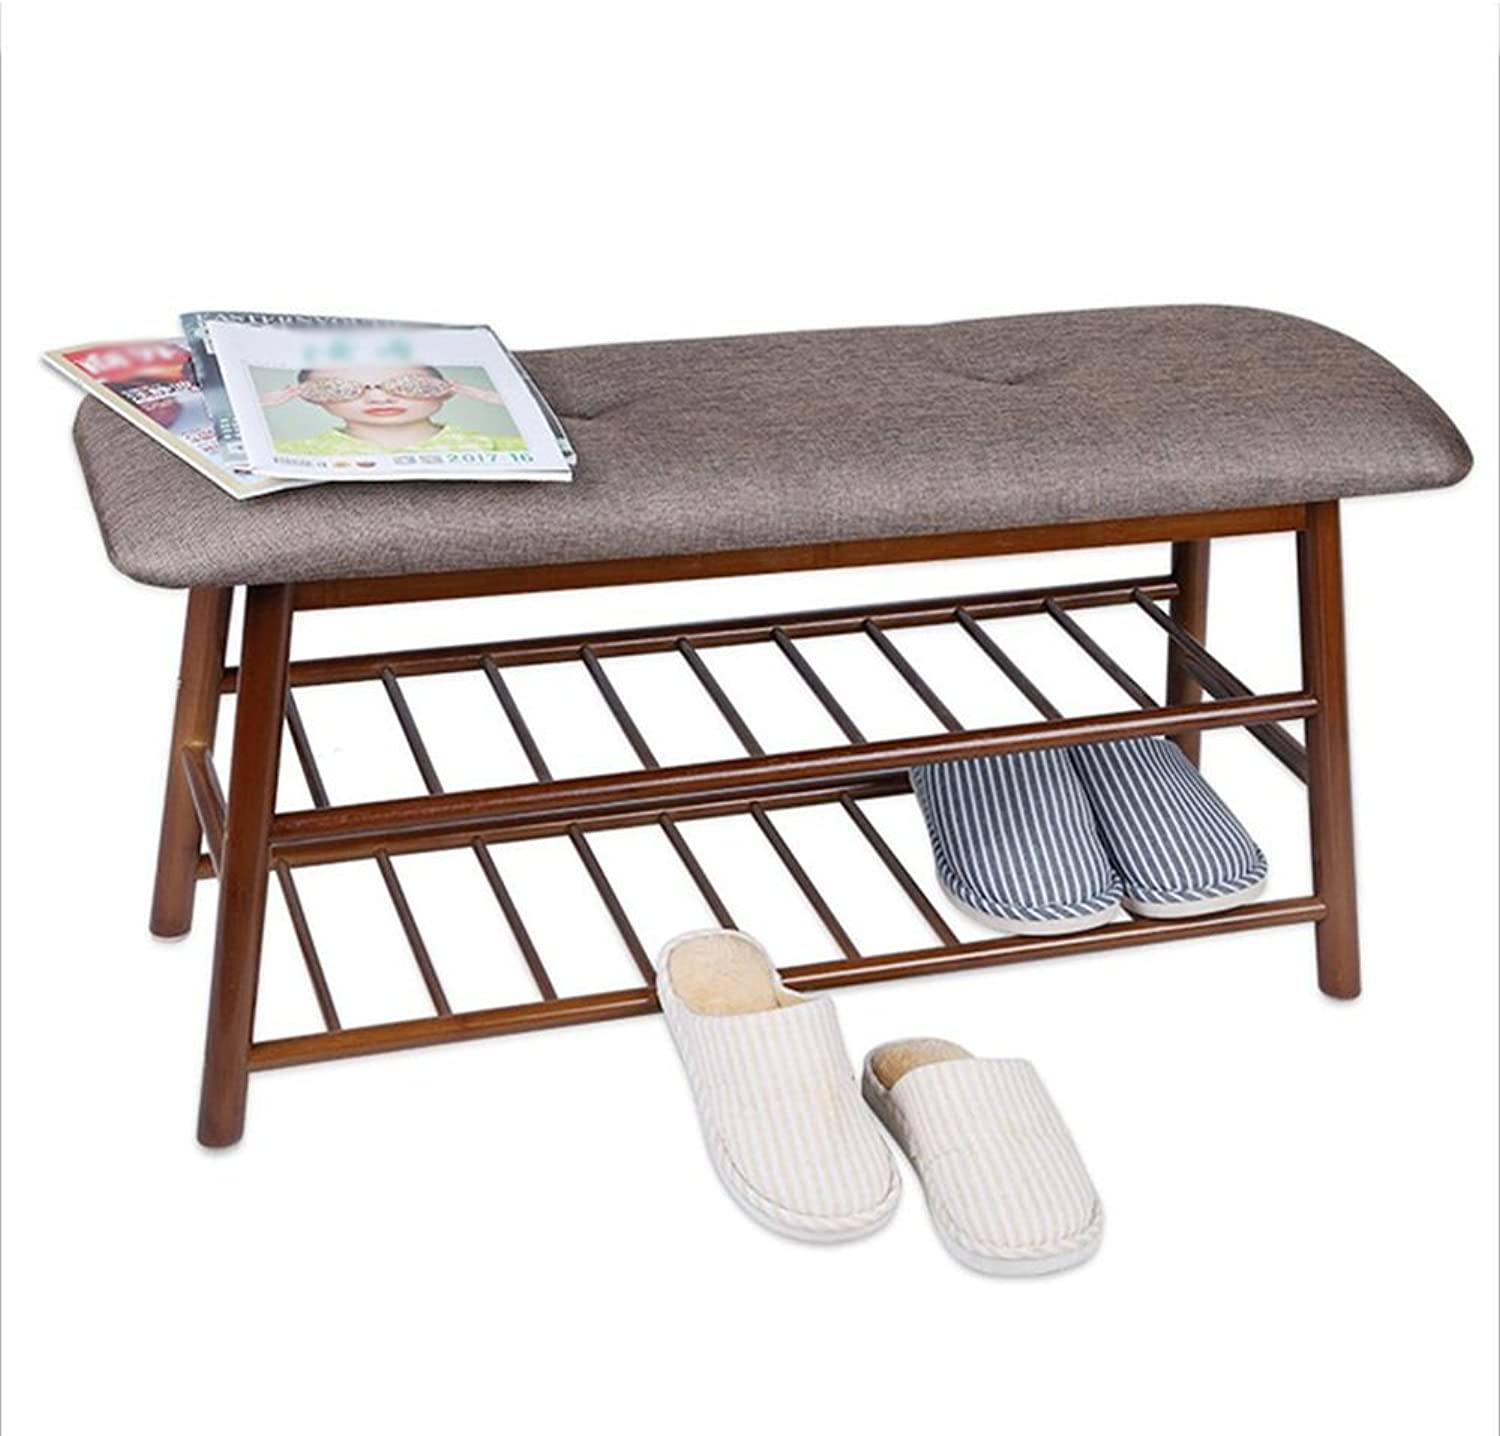 Feifei shoes Stool Nordic Minimalist Modern Bedroom Can Sit shoes Cabinet Bed Solid Wood Storage Bench Door shoes Bench (color   01, Size   90  30  35cm)